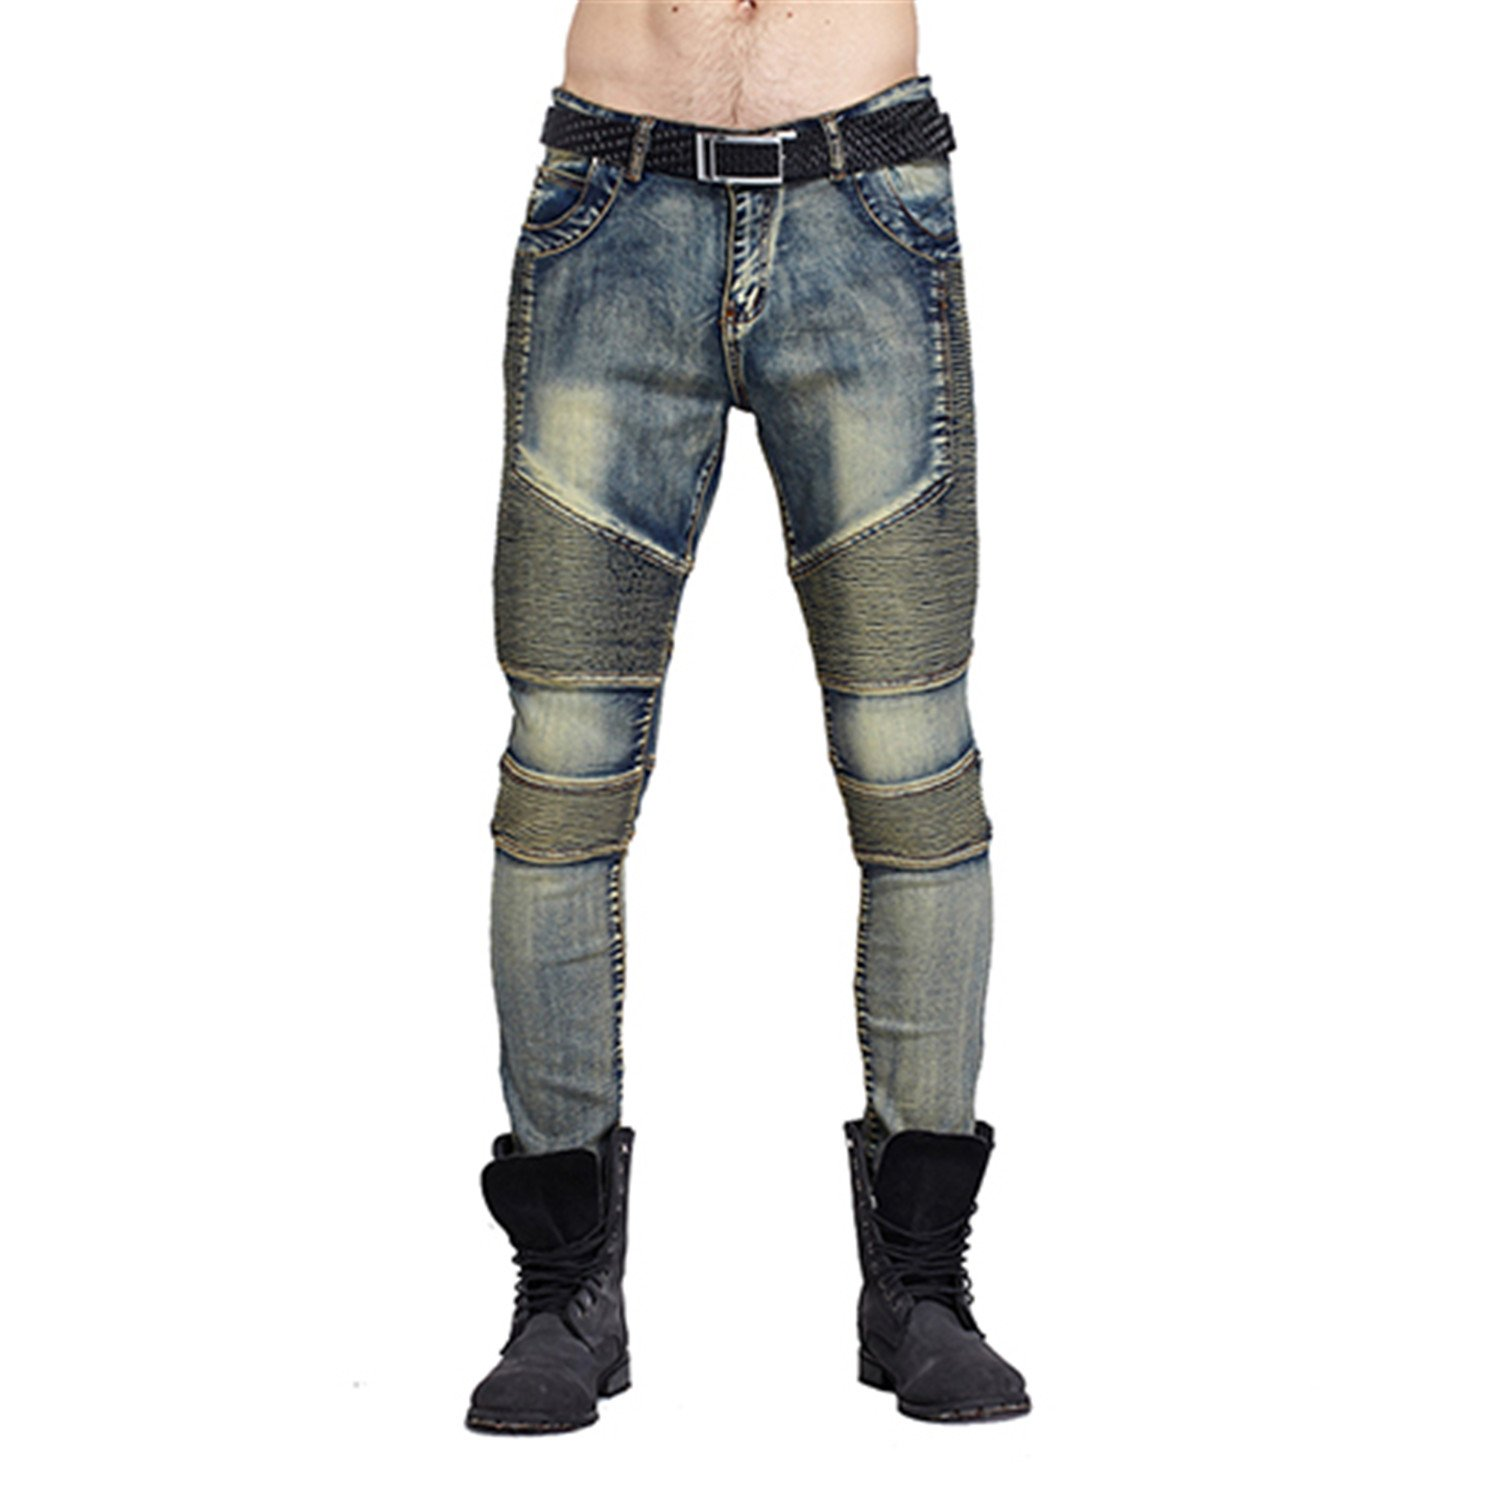 Karl Conner Fashion Streetwear Mens Ripped Biker Motorcycle Slim Fit Strech Jeans Skinny